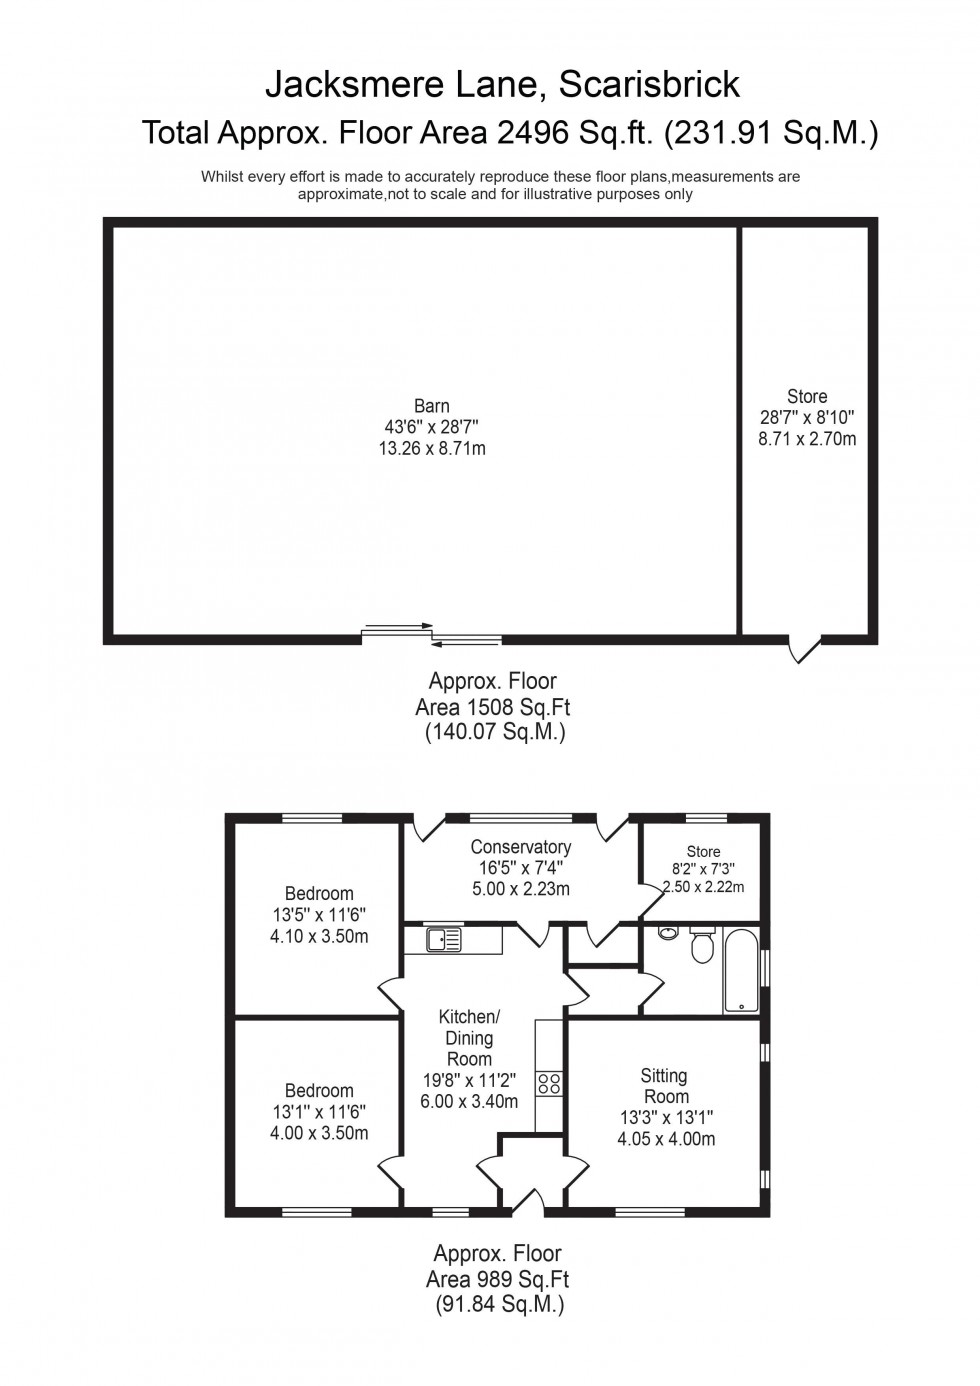 Floorplan for Jacksmere Lane, Scarisbrick